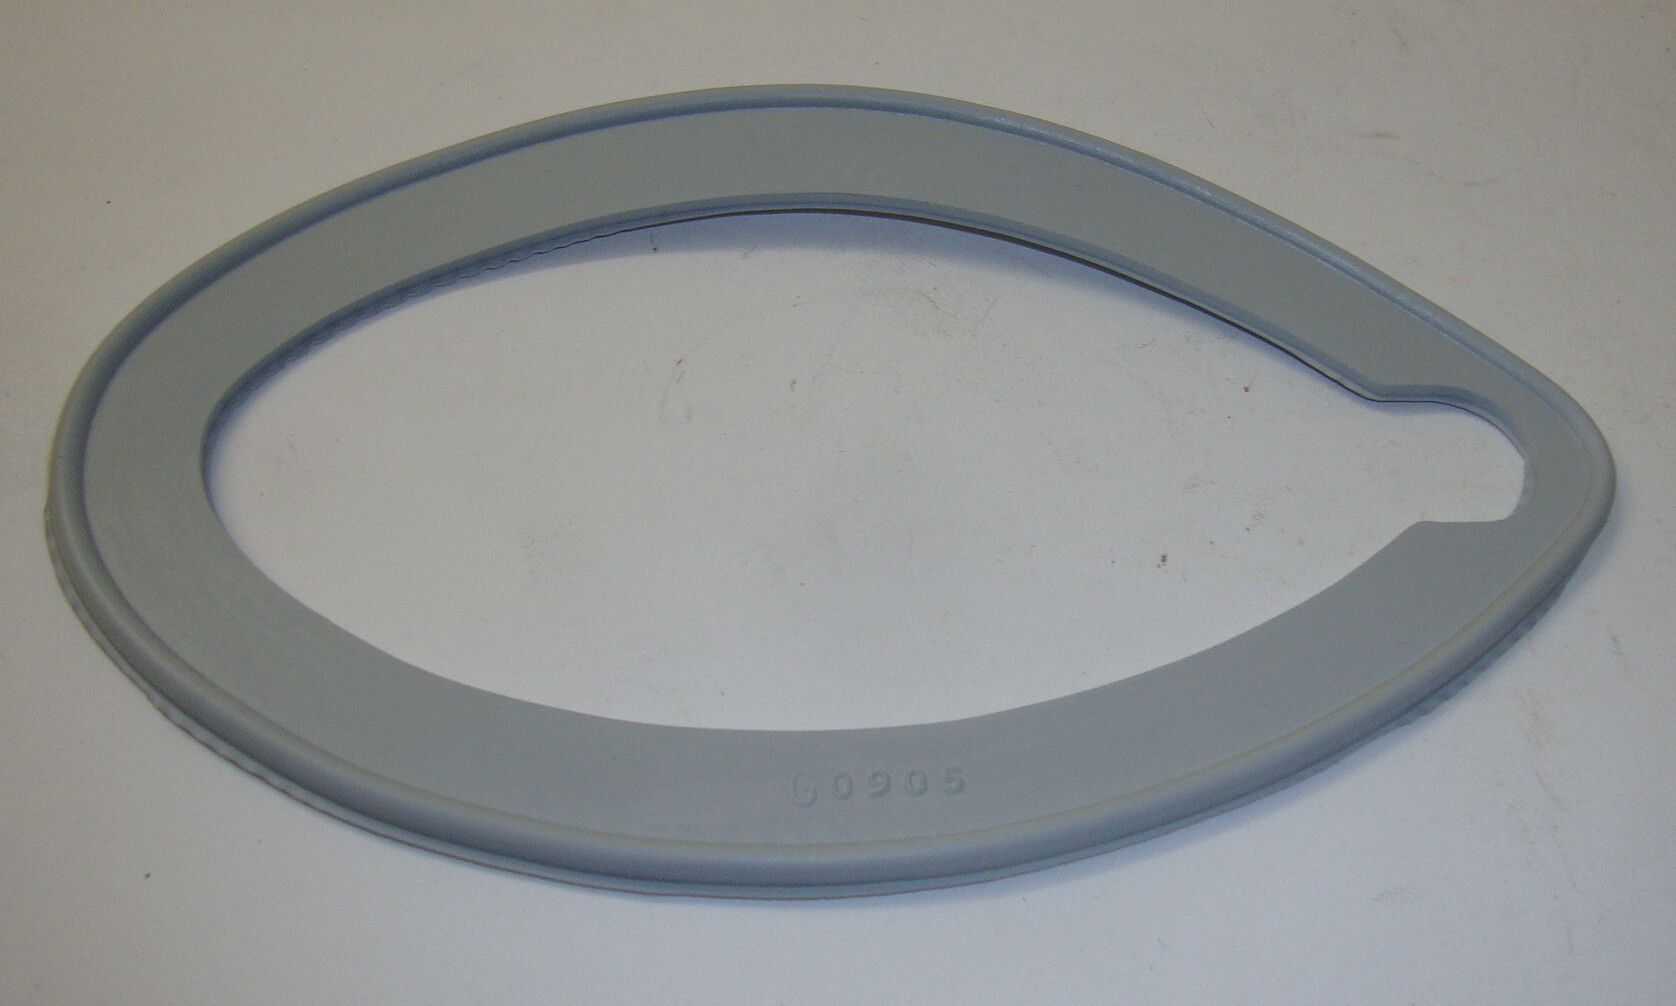 Gasket between headlamp and mudg